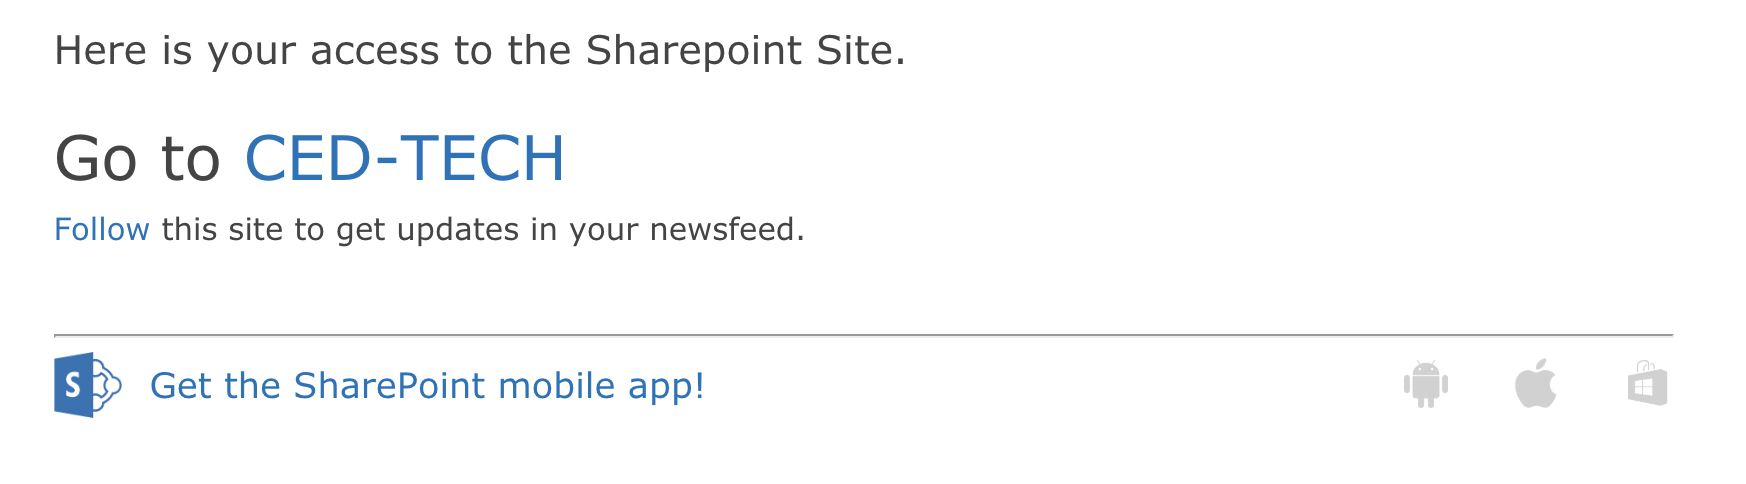 Screenshot of a sample SharePoint Email with access information